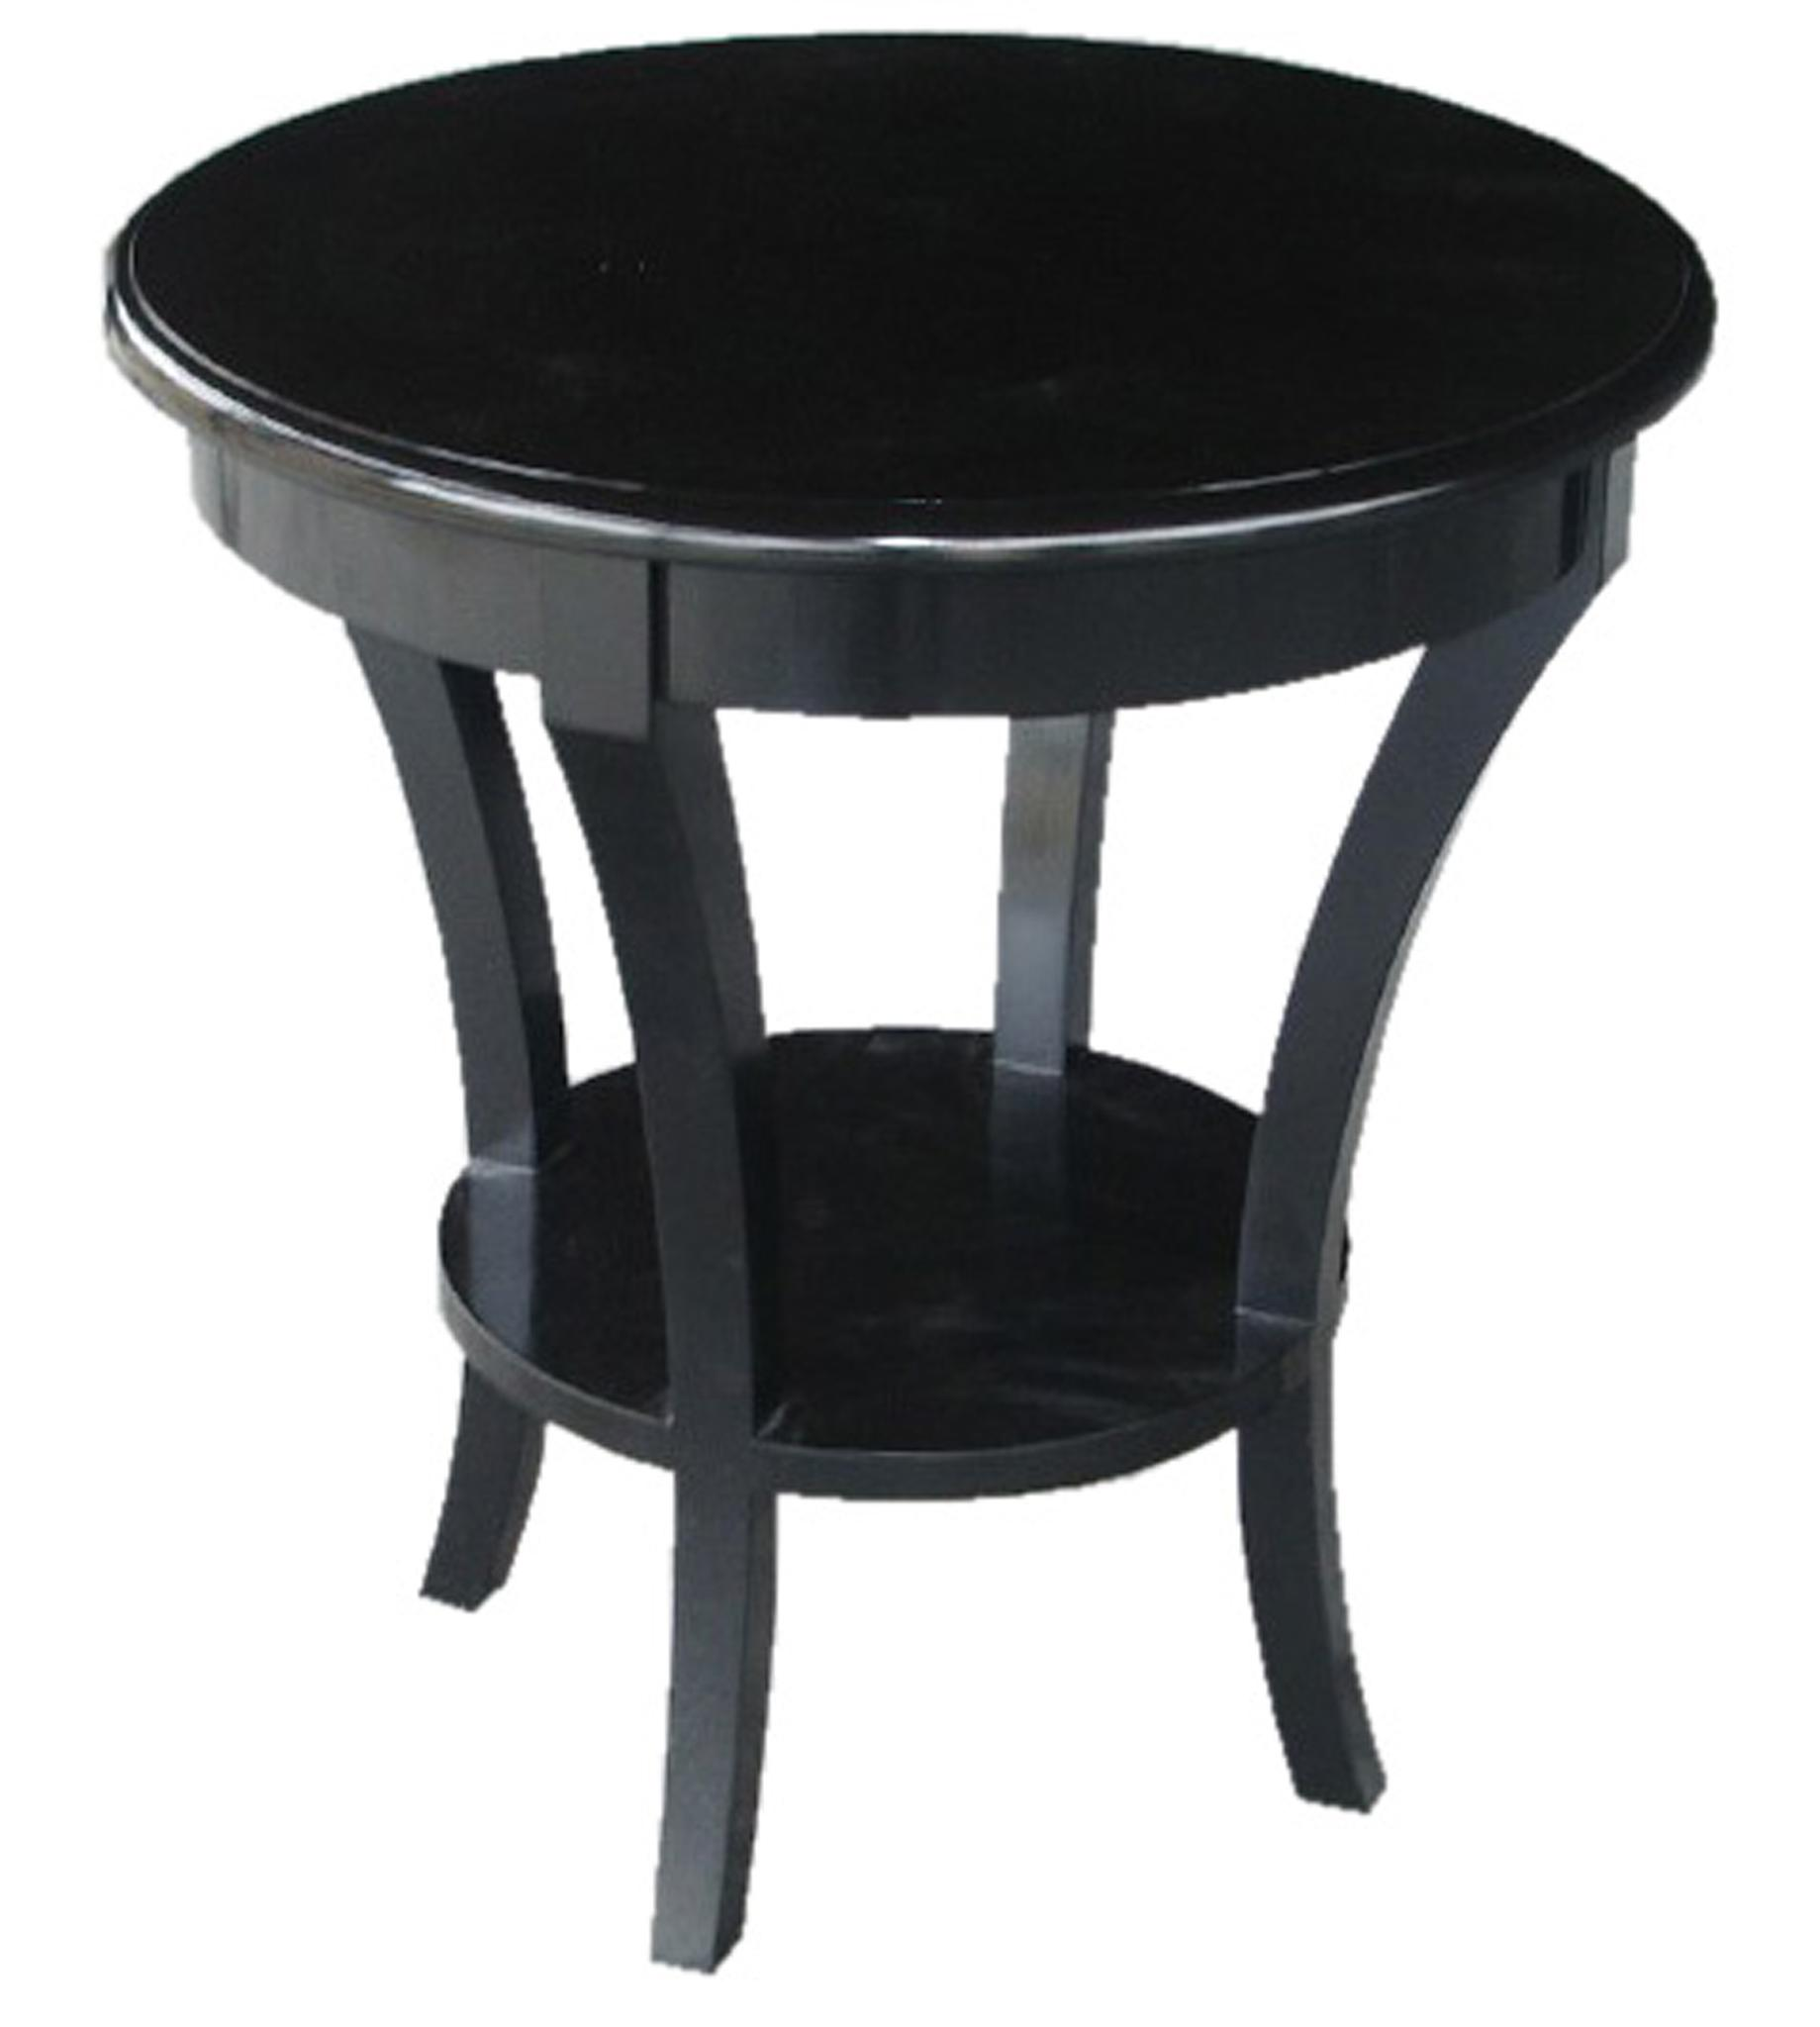 small black tables accent table round end entryway chest farmhouse dining and chairs bedroom furniture trailer blue mosaic ikea outdoor shelf maritime pendant oval wood gray